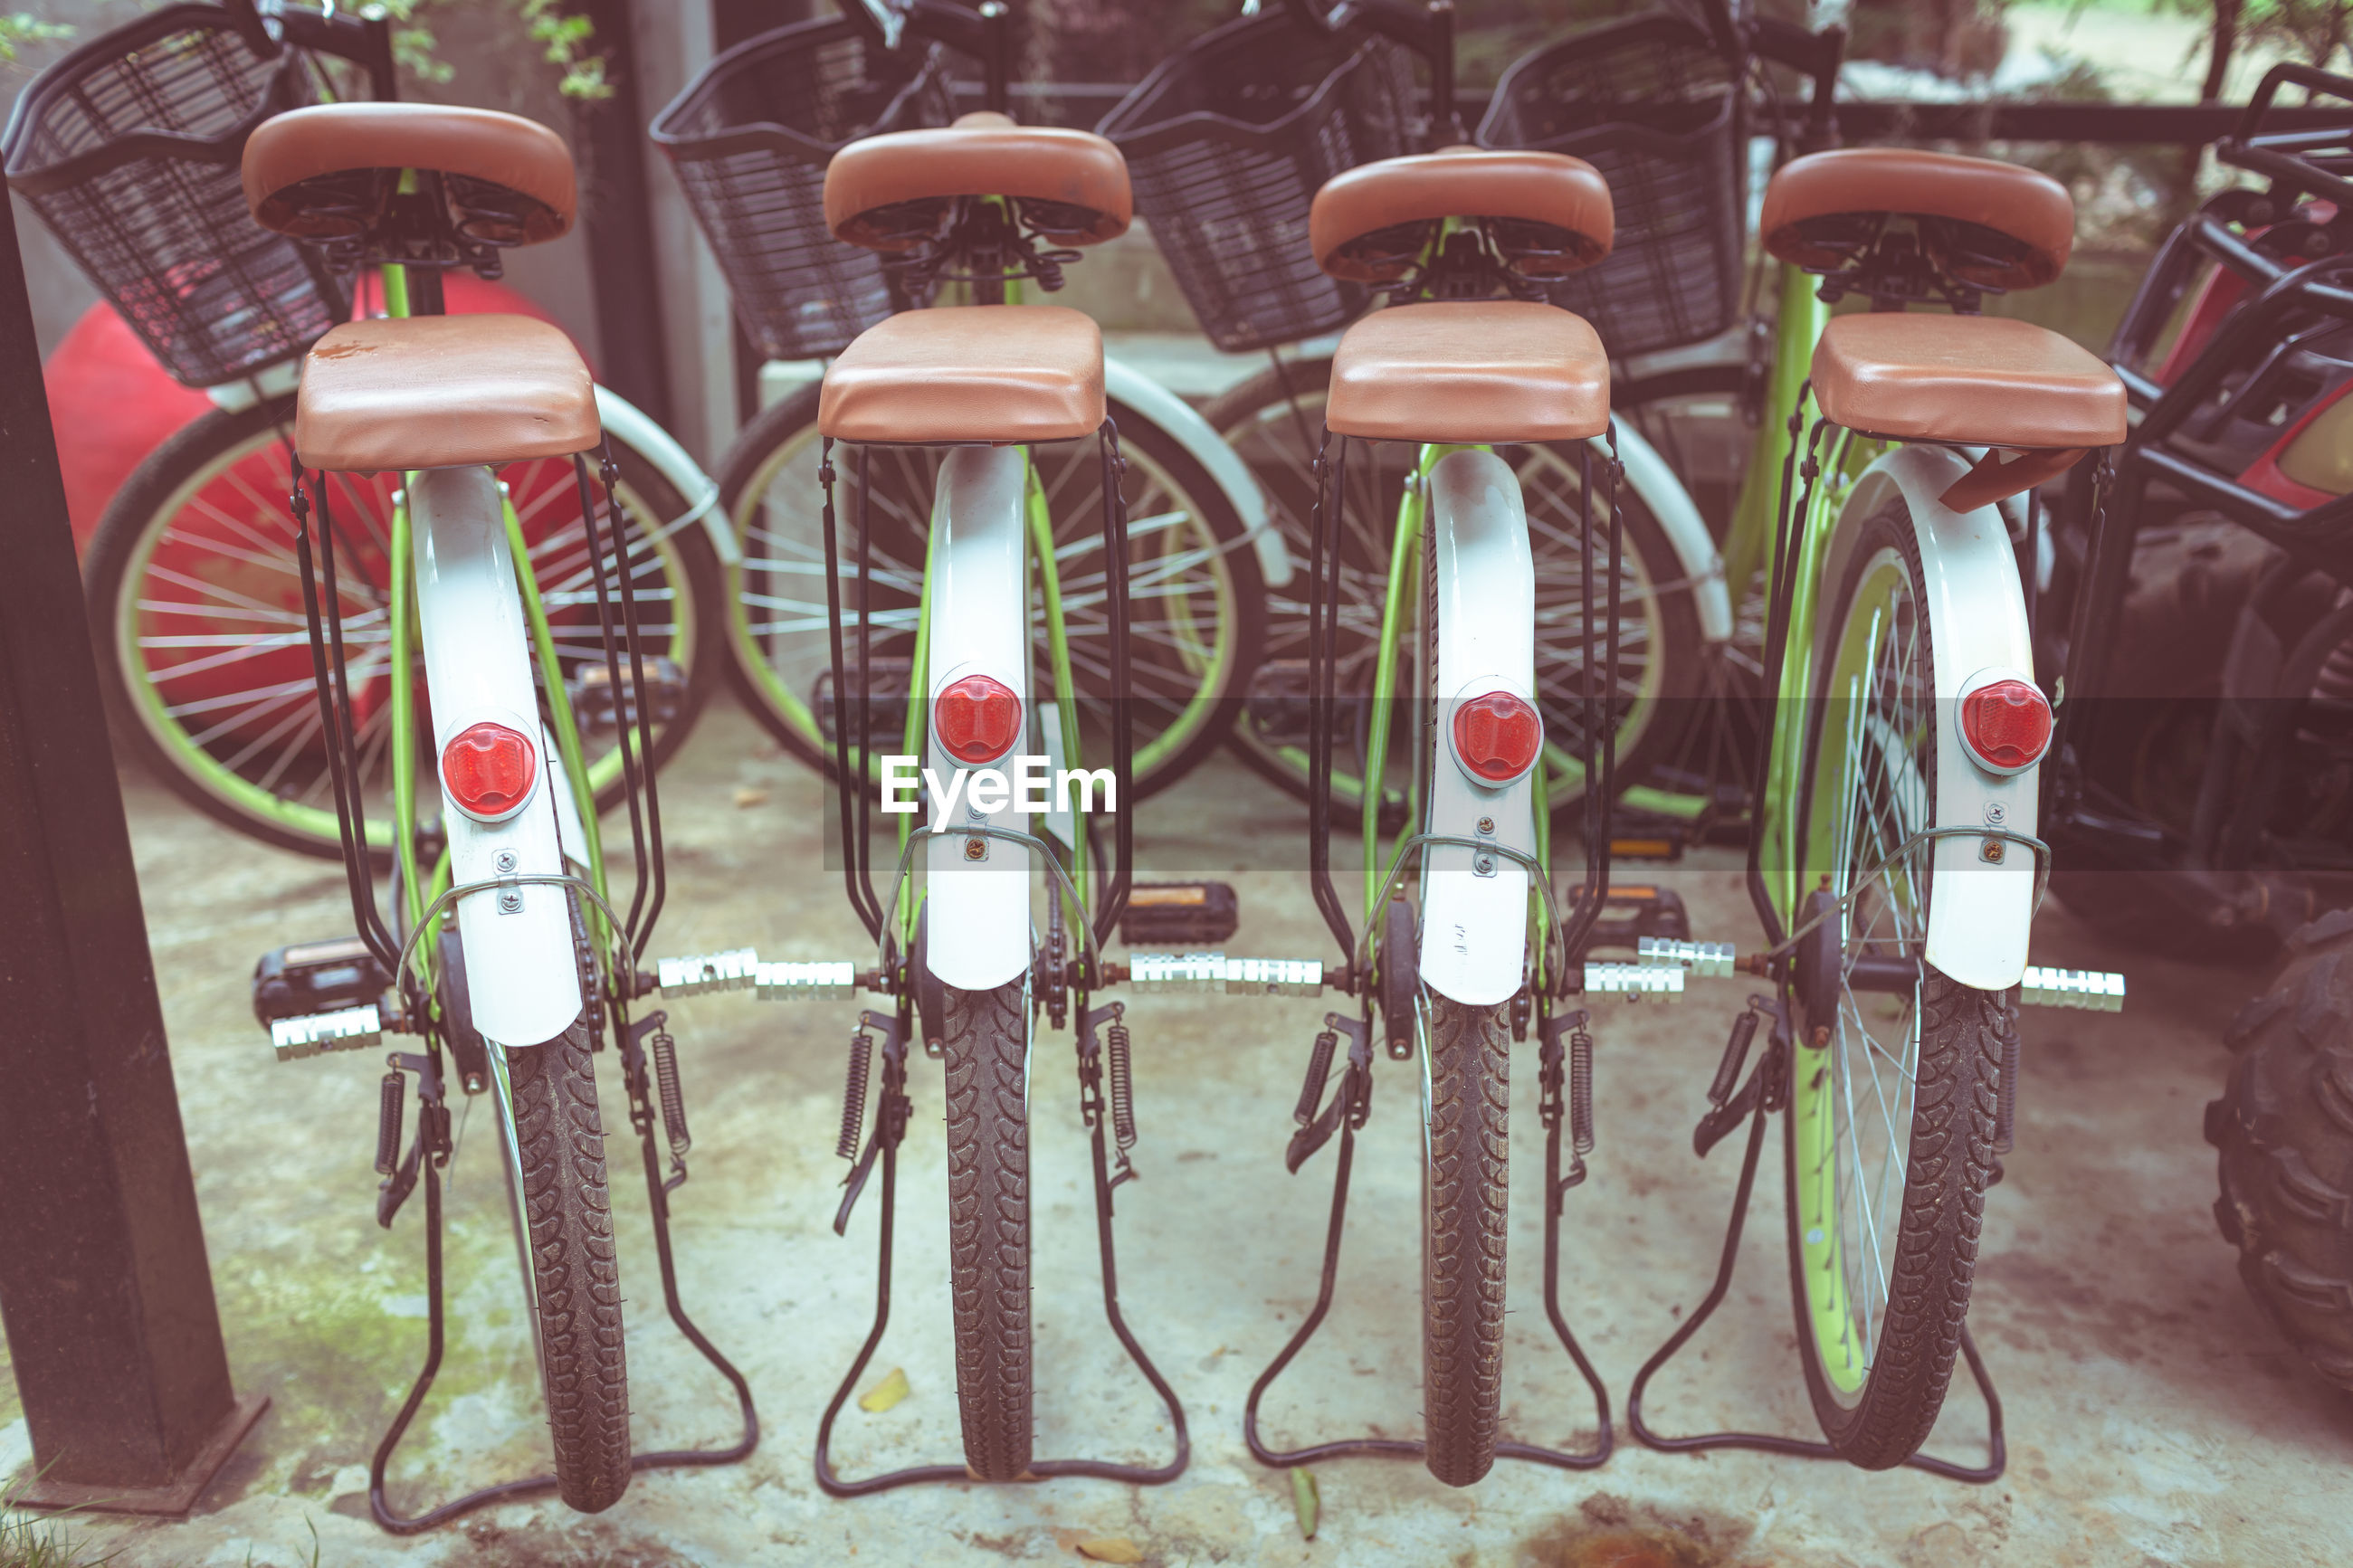 View of bicycles parked in row